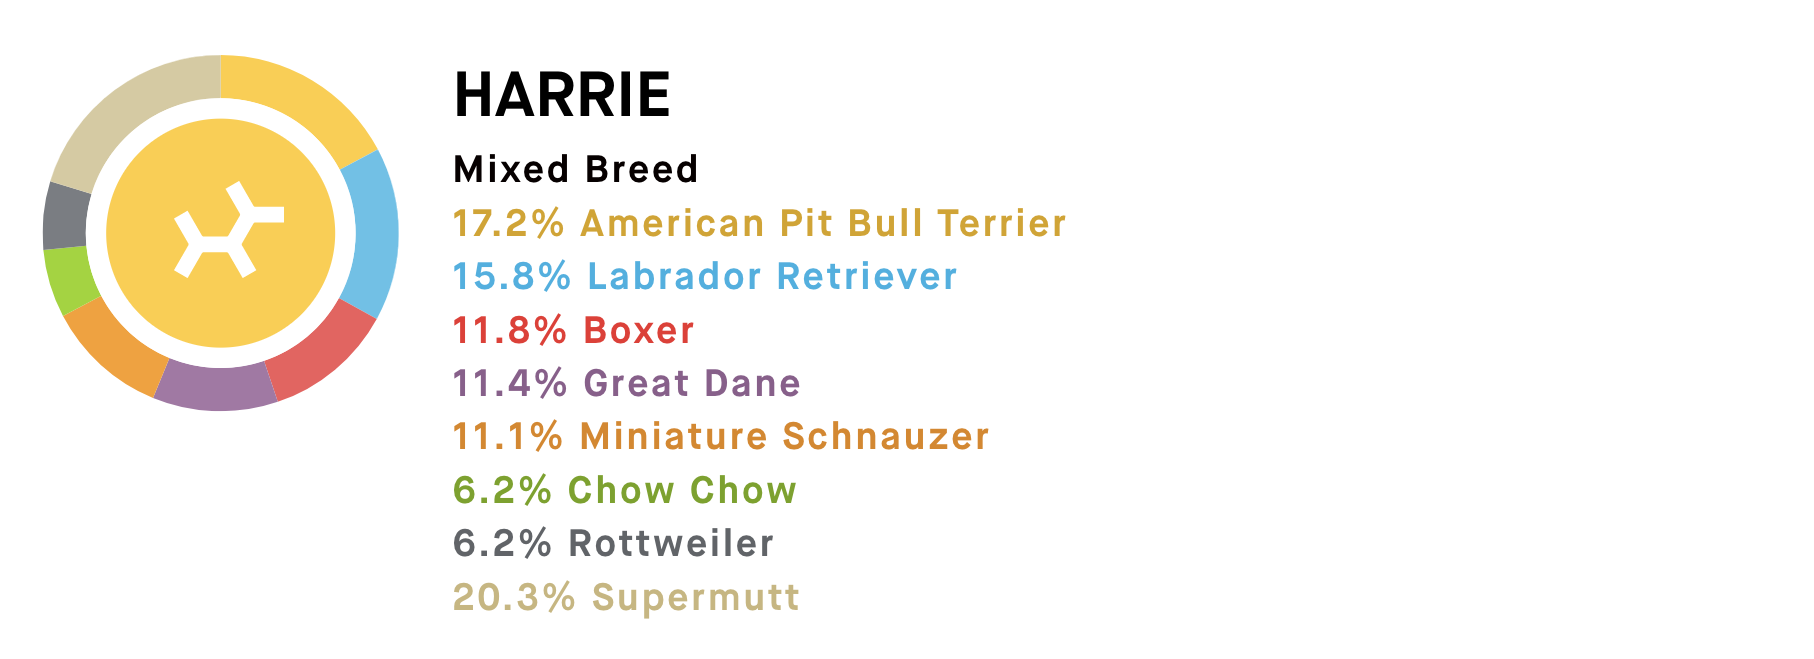 DNA results for Harrie. Mixed Breed 17.2% American Pit Bull Terrier 15.8% Labrador Retriever 11.8% Boxer 11.4% Great Dane 11.1% Miniature Schnauzer 6.2% Chow Chow 6.2% Rottweiler 20.3% Supermutt